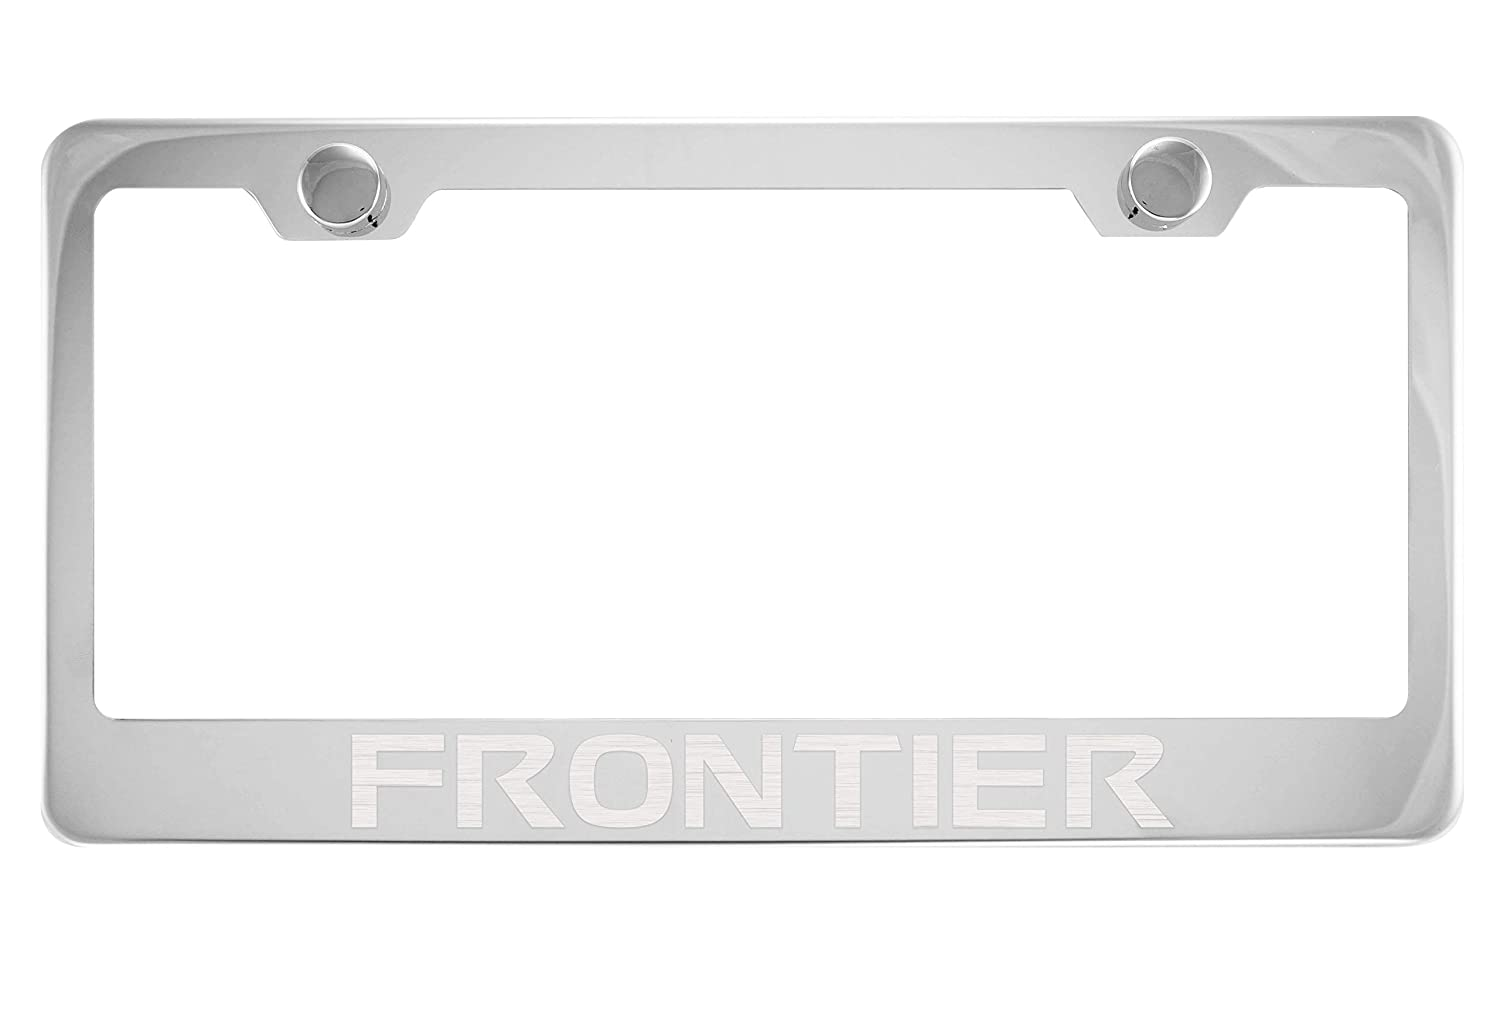 Nissan Frontier Mirrored Chrome Stainless Steel License Plate Frame